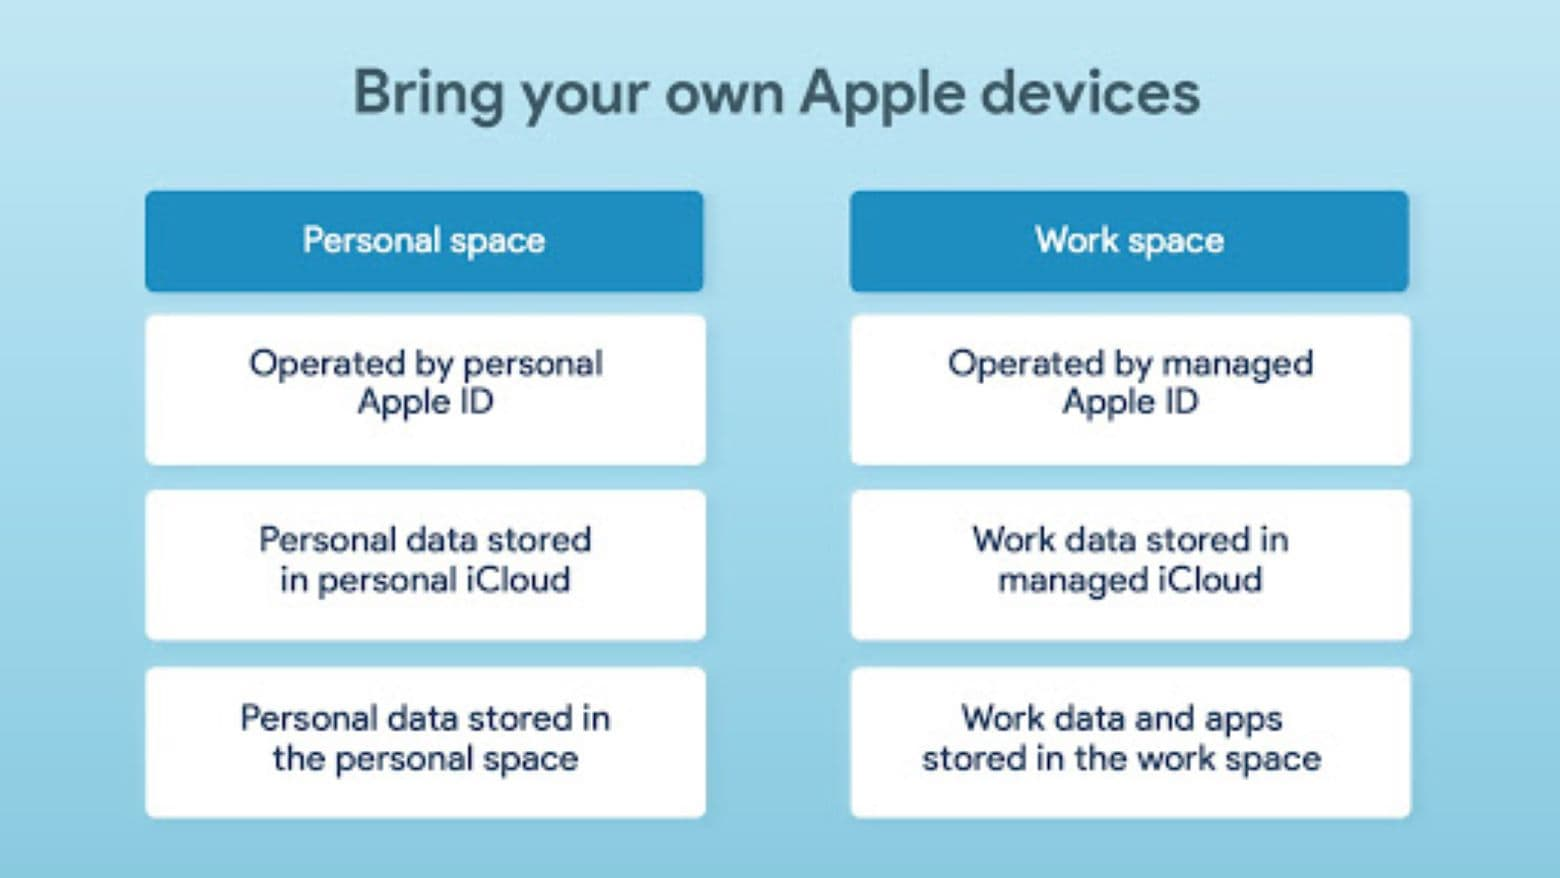 Hexnode Apple User Enrollment: A UE-managed BYOD environment for Apple truly separates personal and work spaces on the device